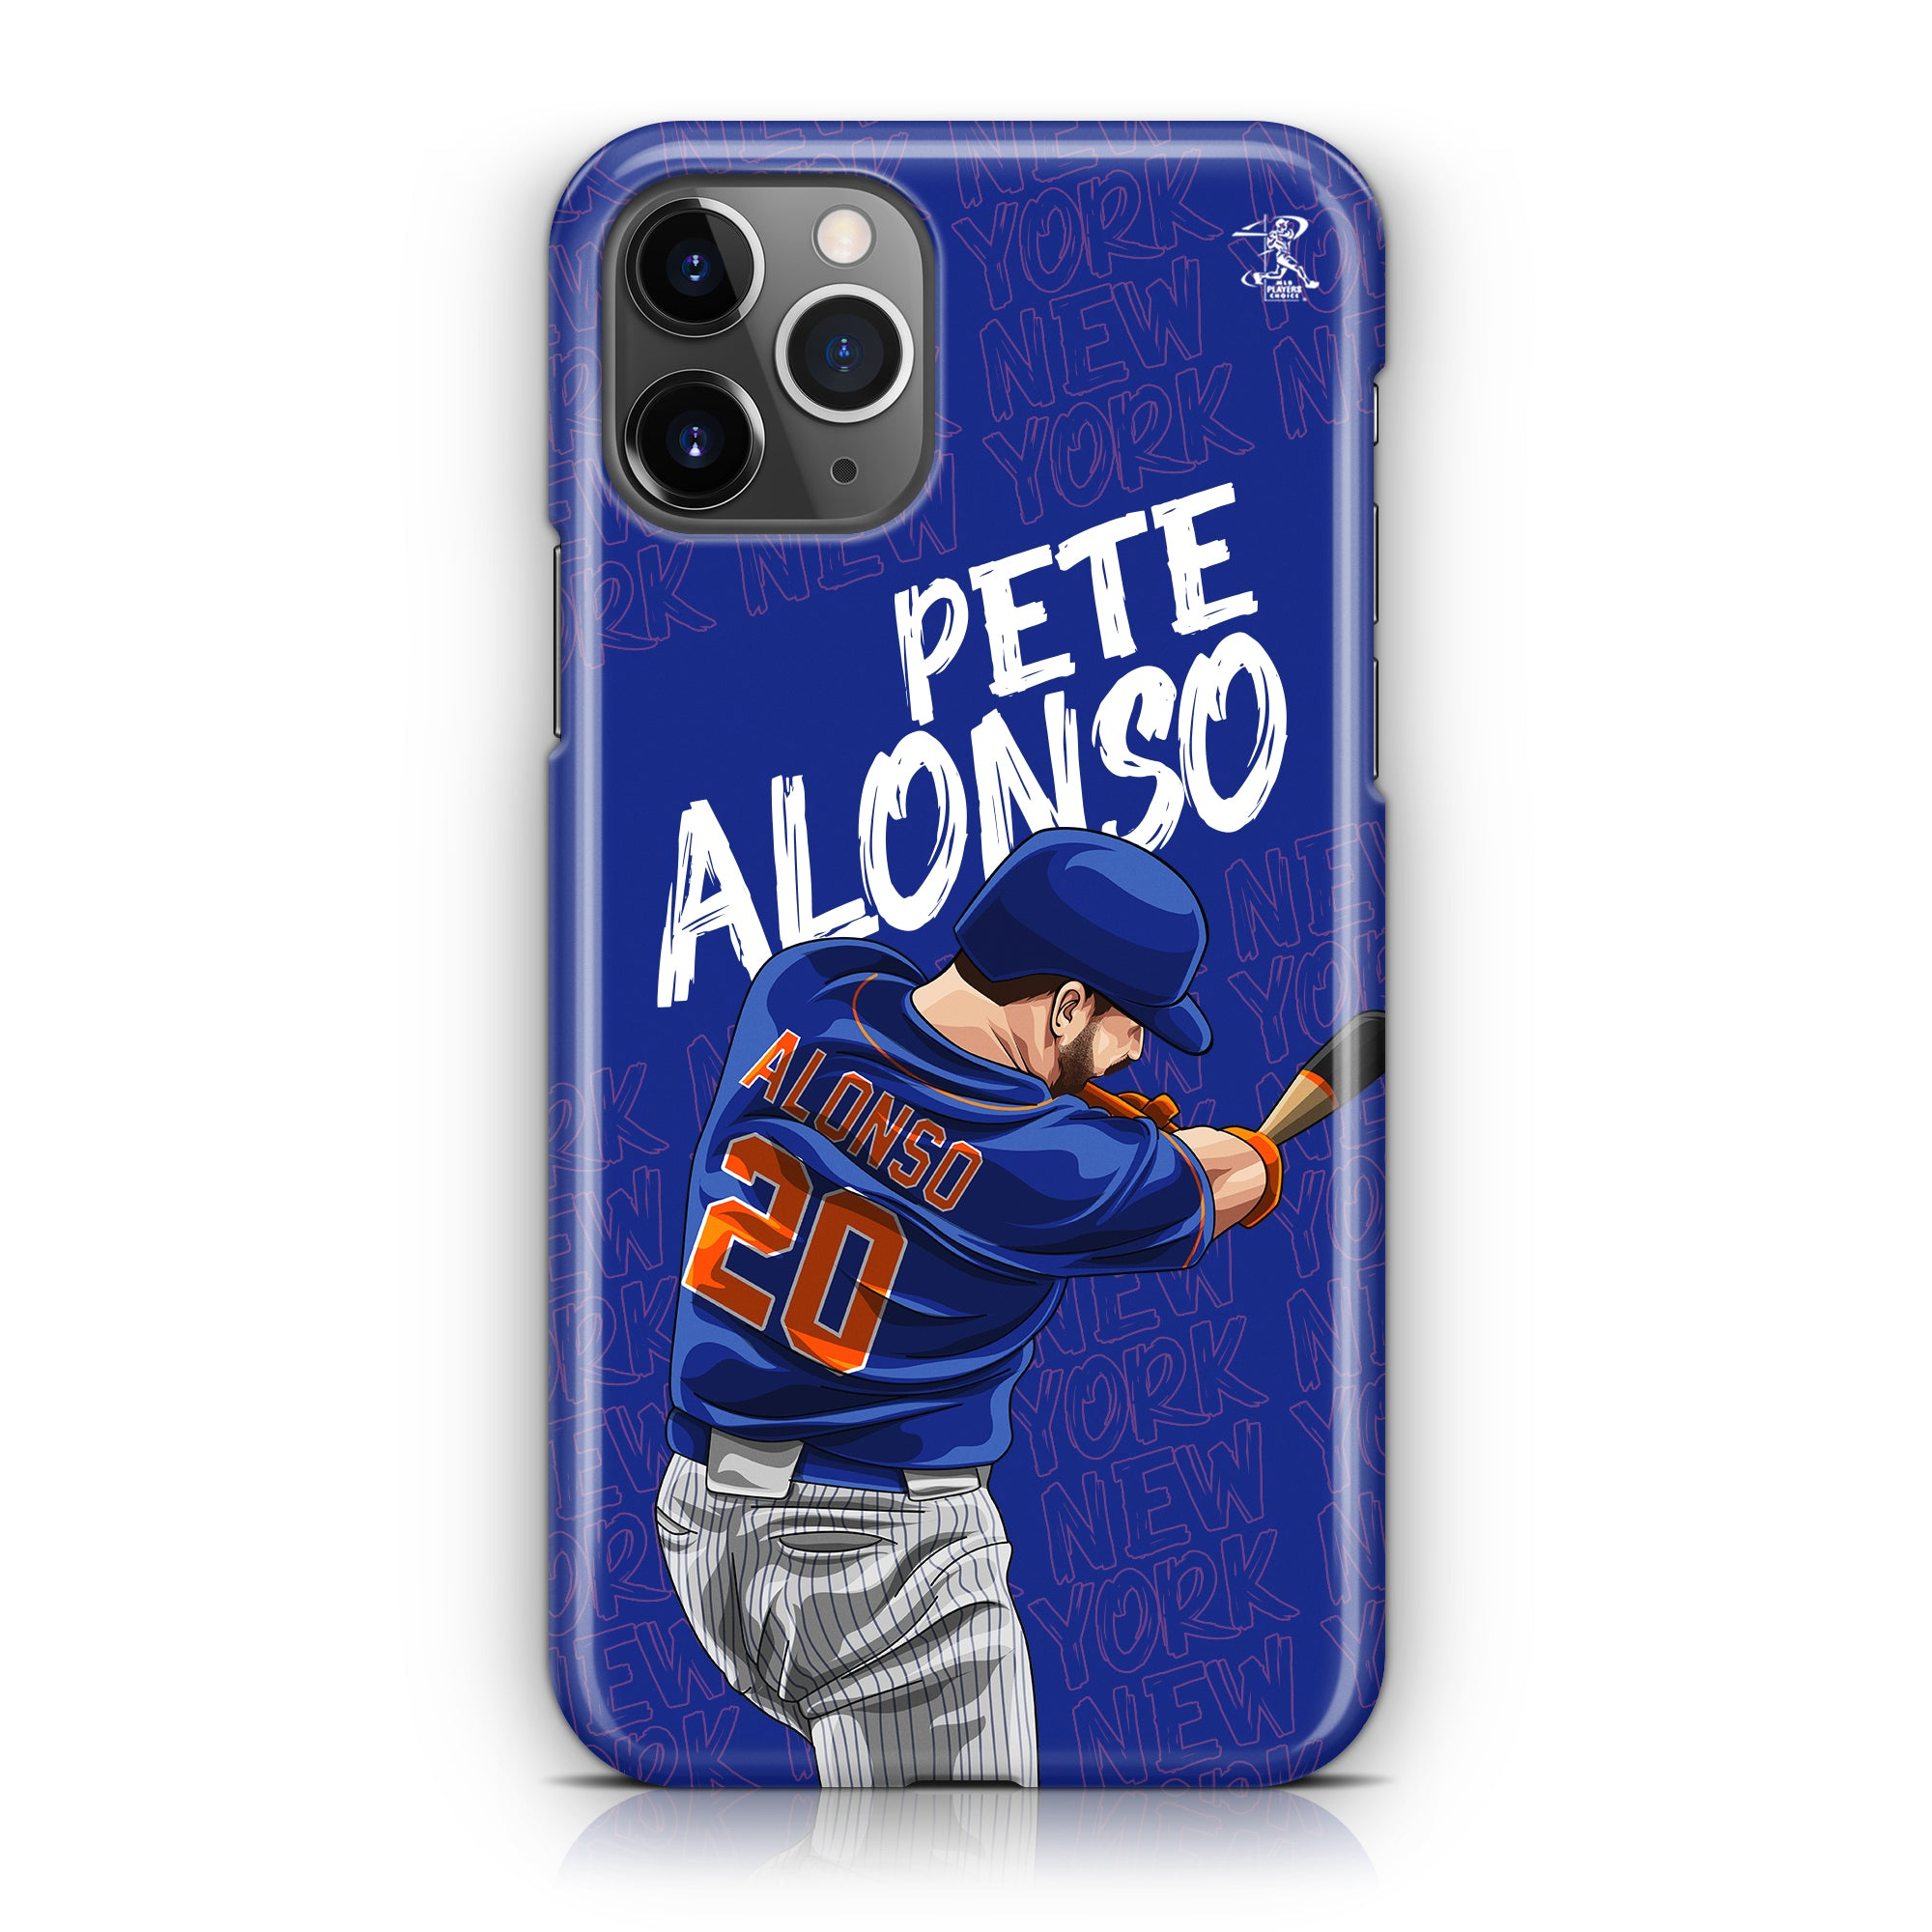 Alonso Star Series 2.0 Case